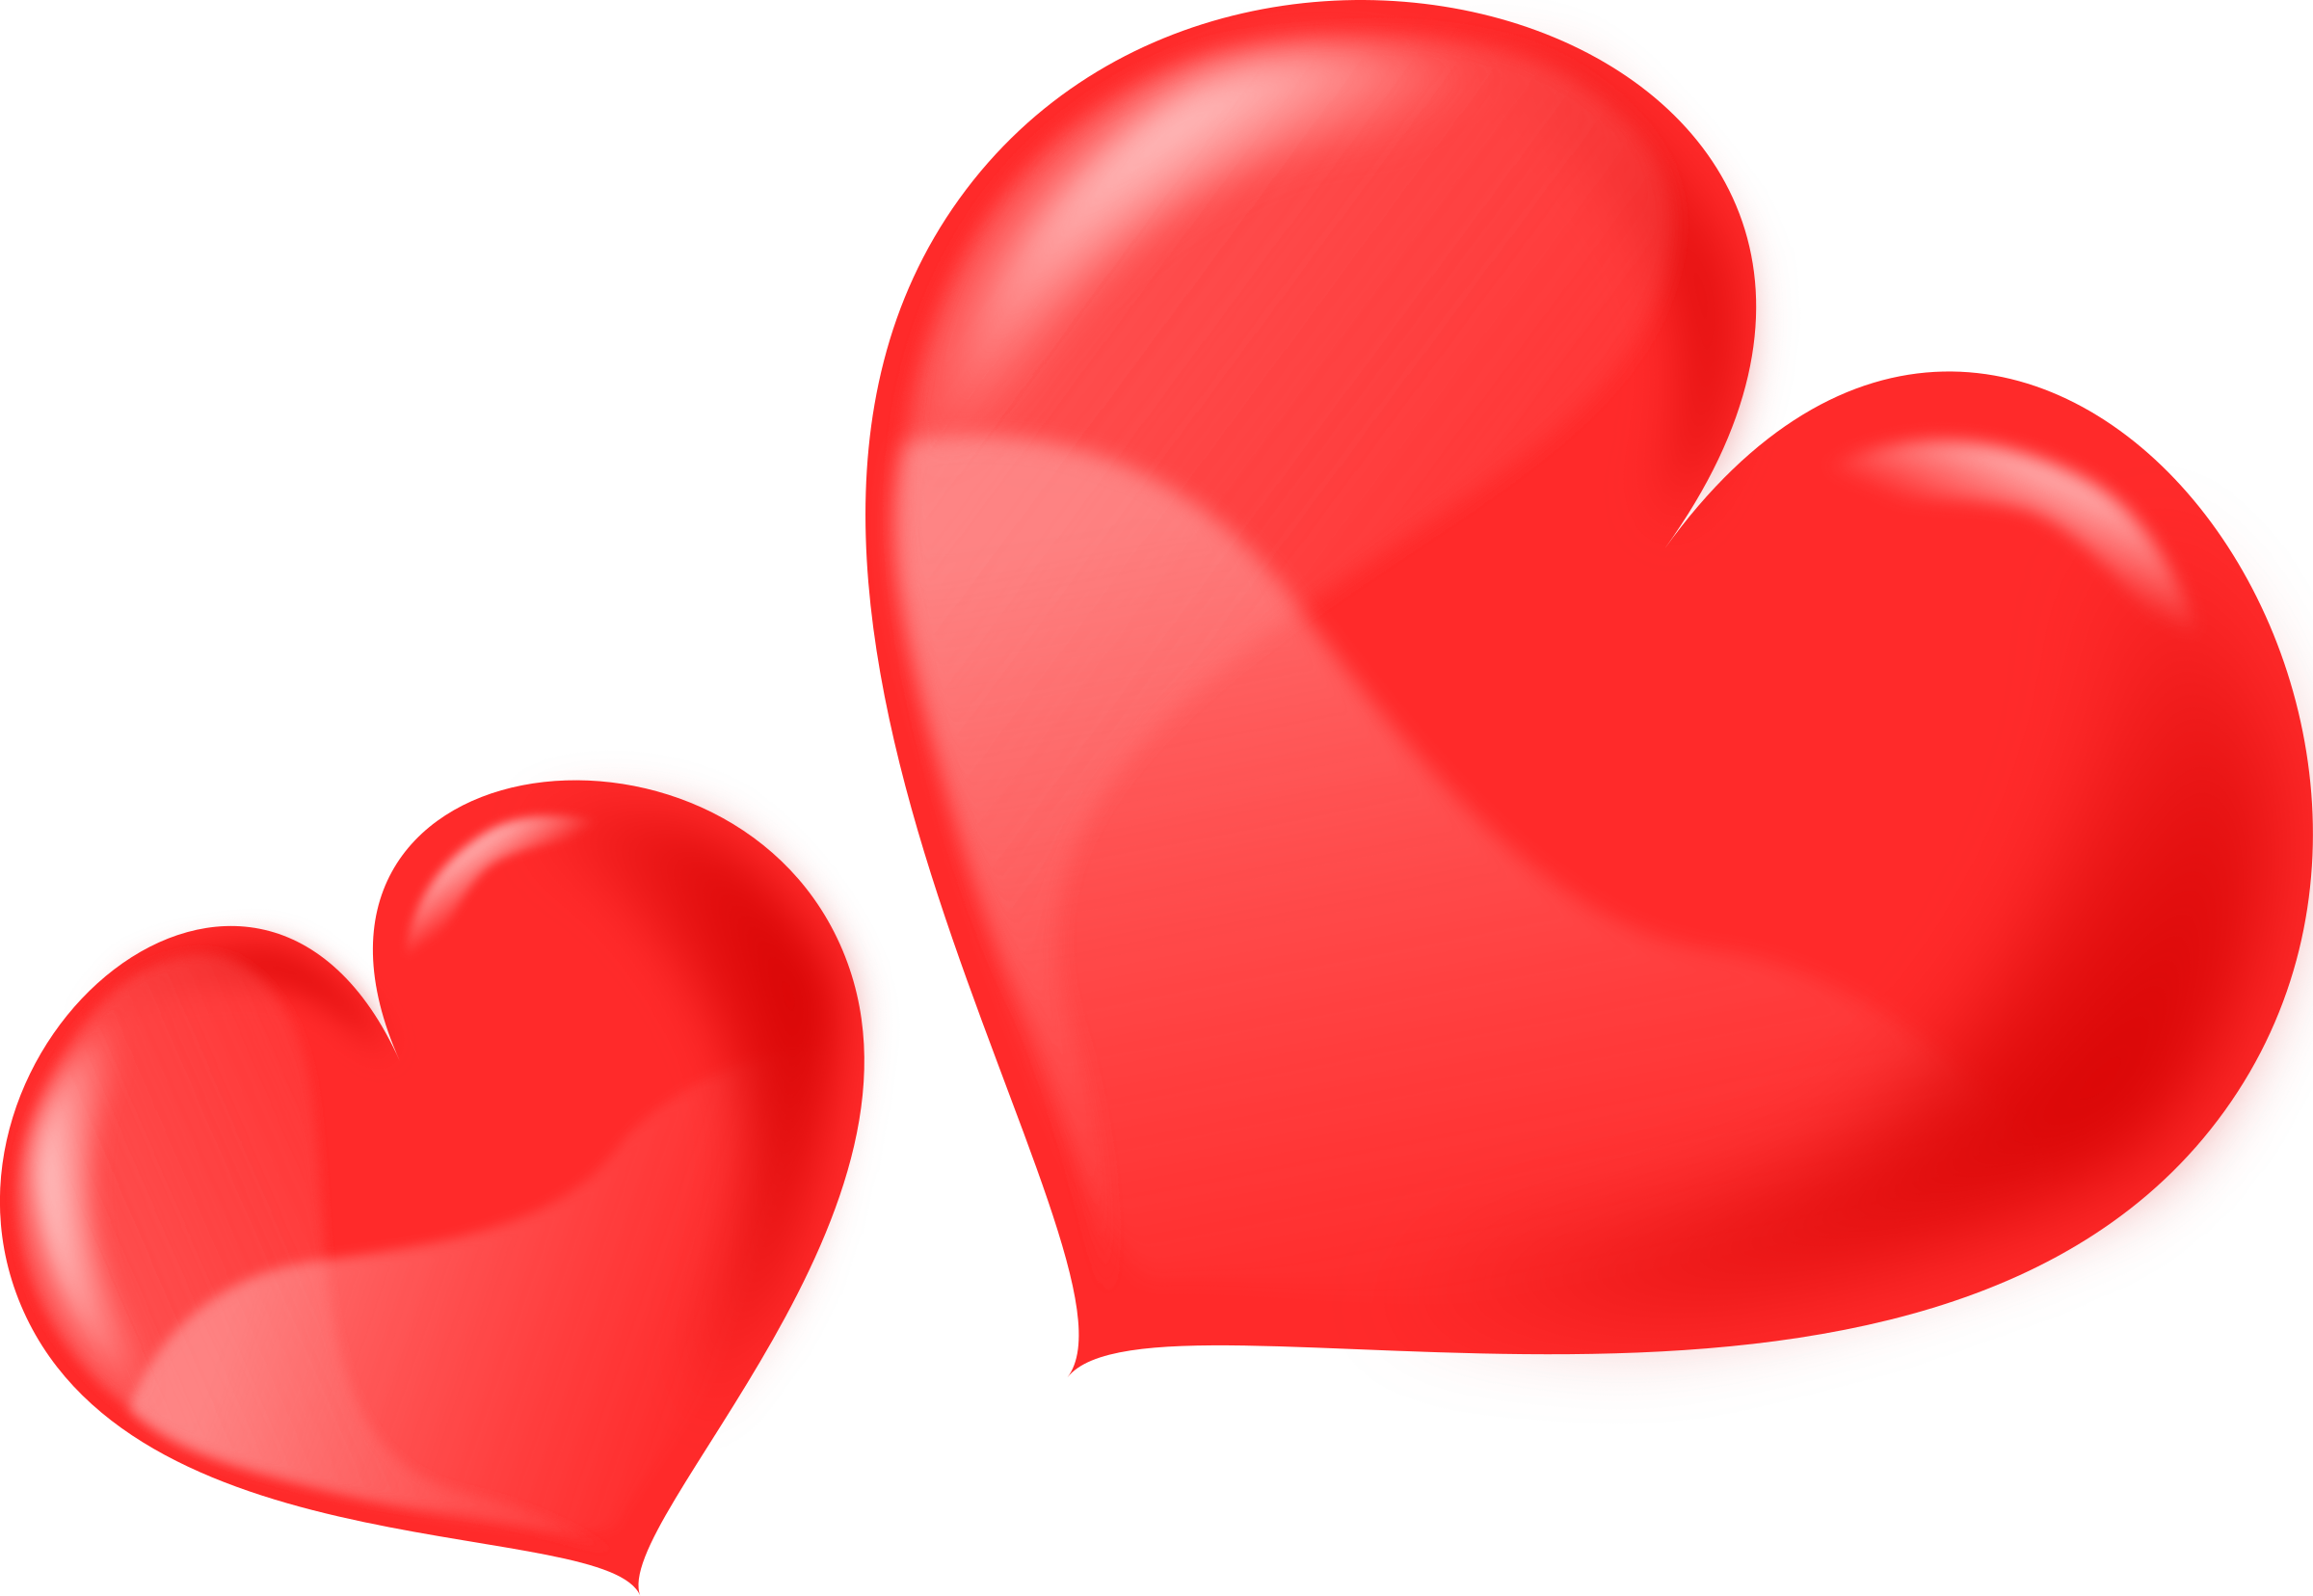 Hearts .png. Heart glossy two icons